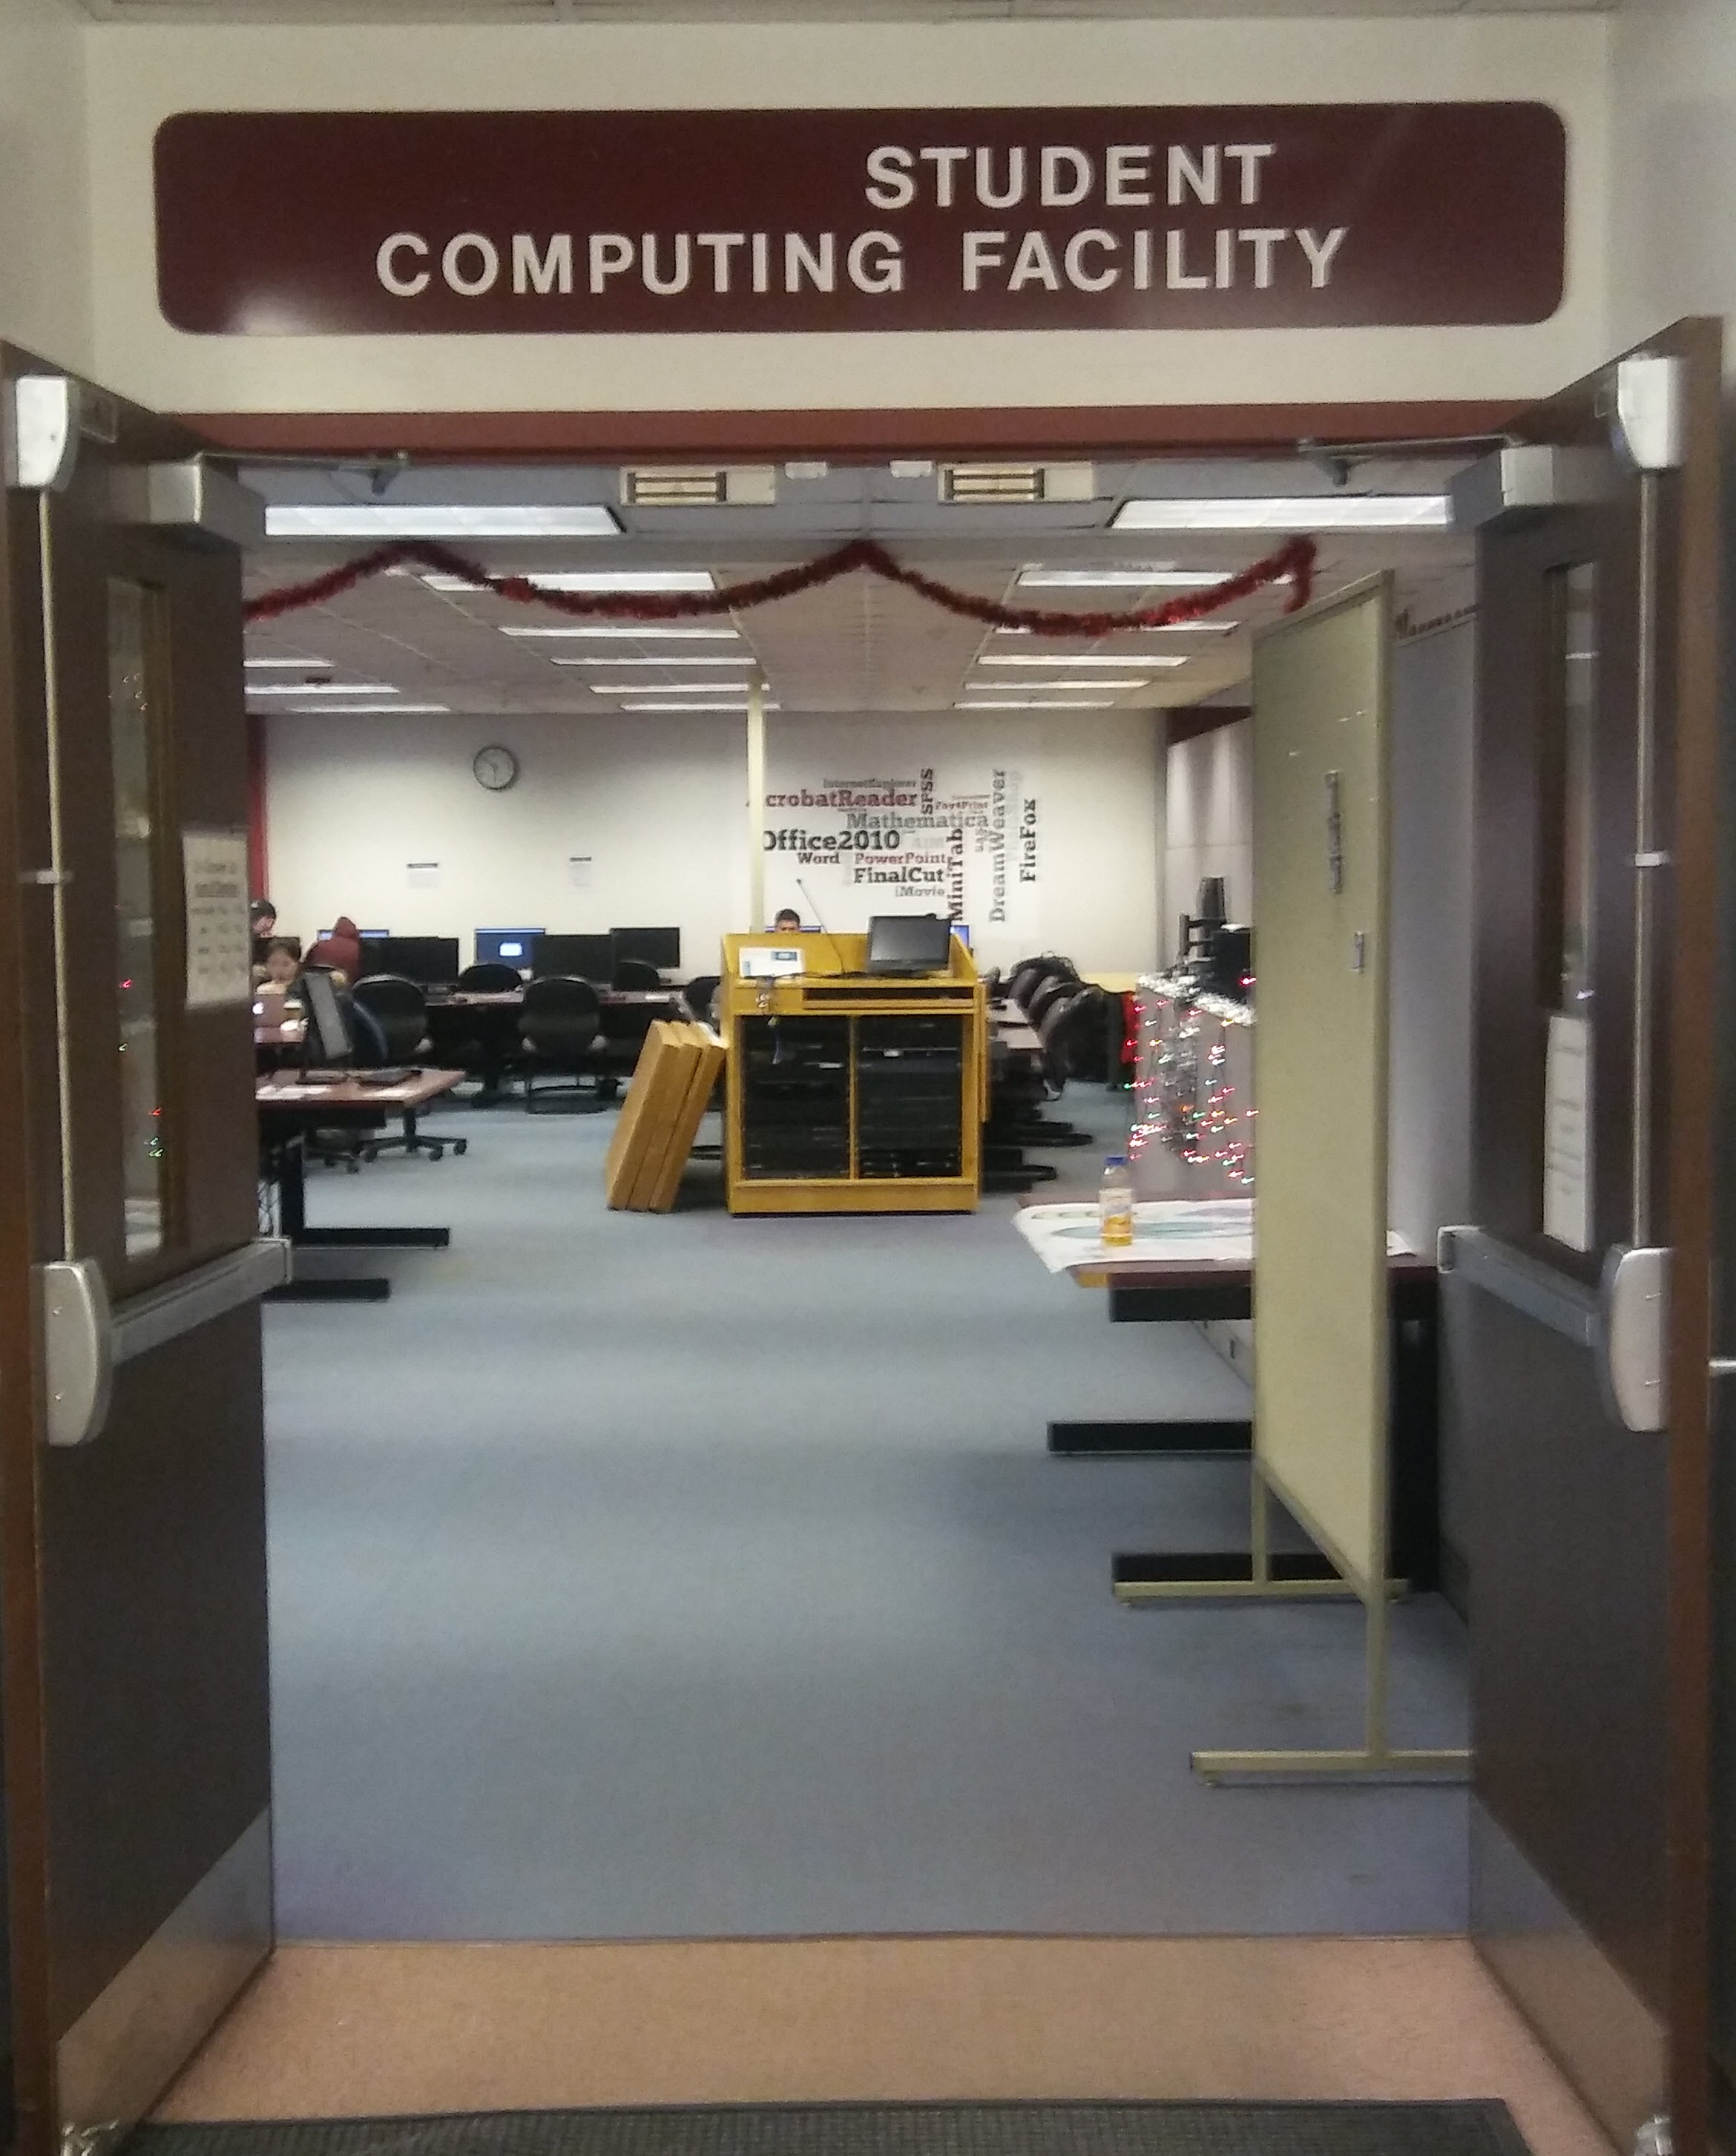 photo of the Student Computing Facility looking in on some of the equipment